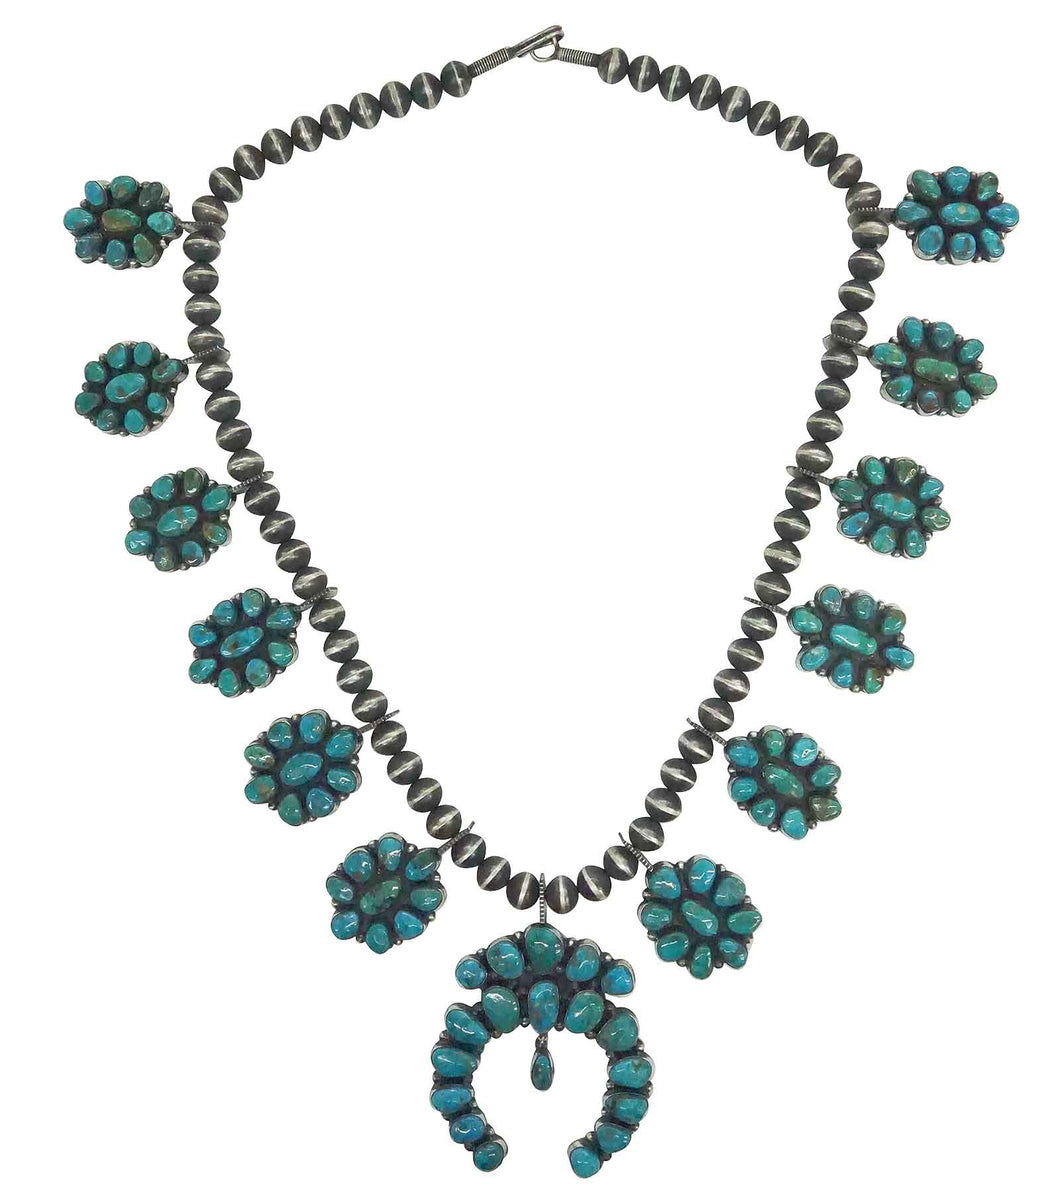 Andy Cadman, Cluster Necklace, Blue Gem Turquoise, Navajo Handmade, 28